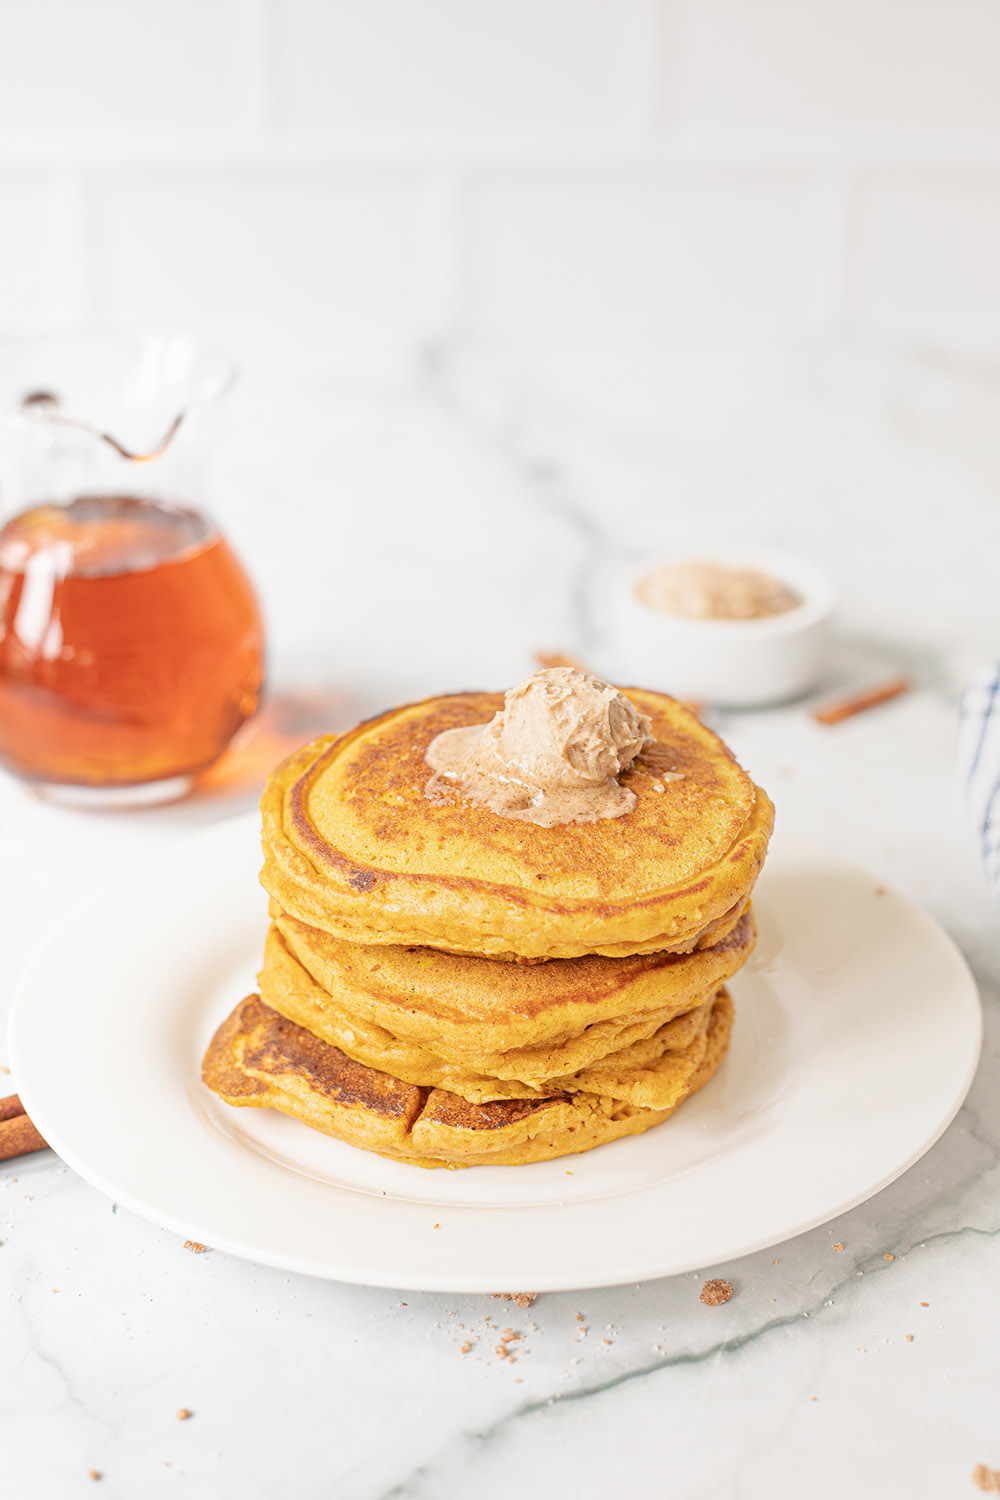 Pancakes on a plate topped with honey butter and a pitcher of syrup in the background.